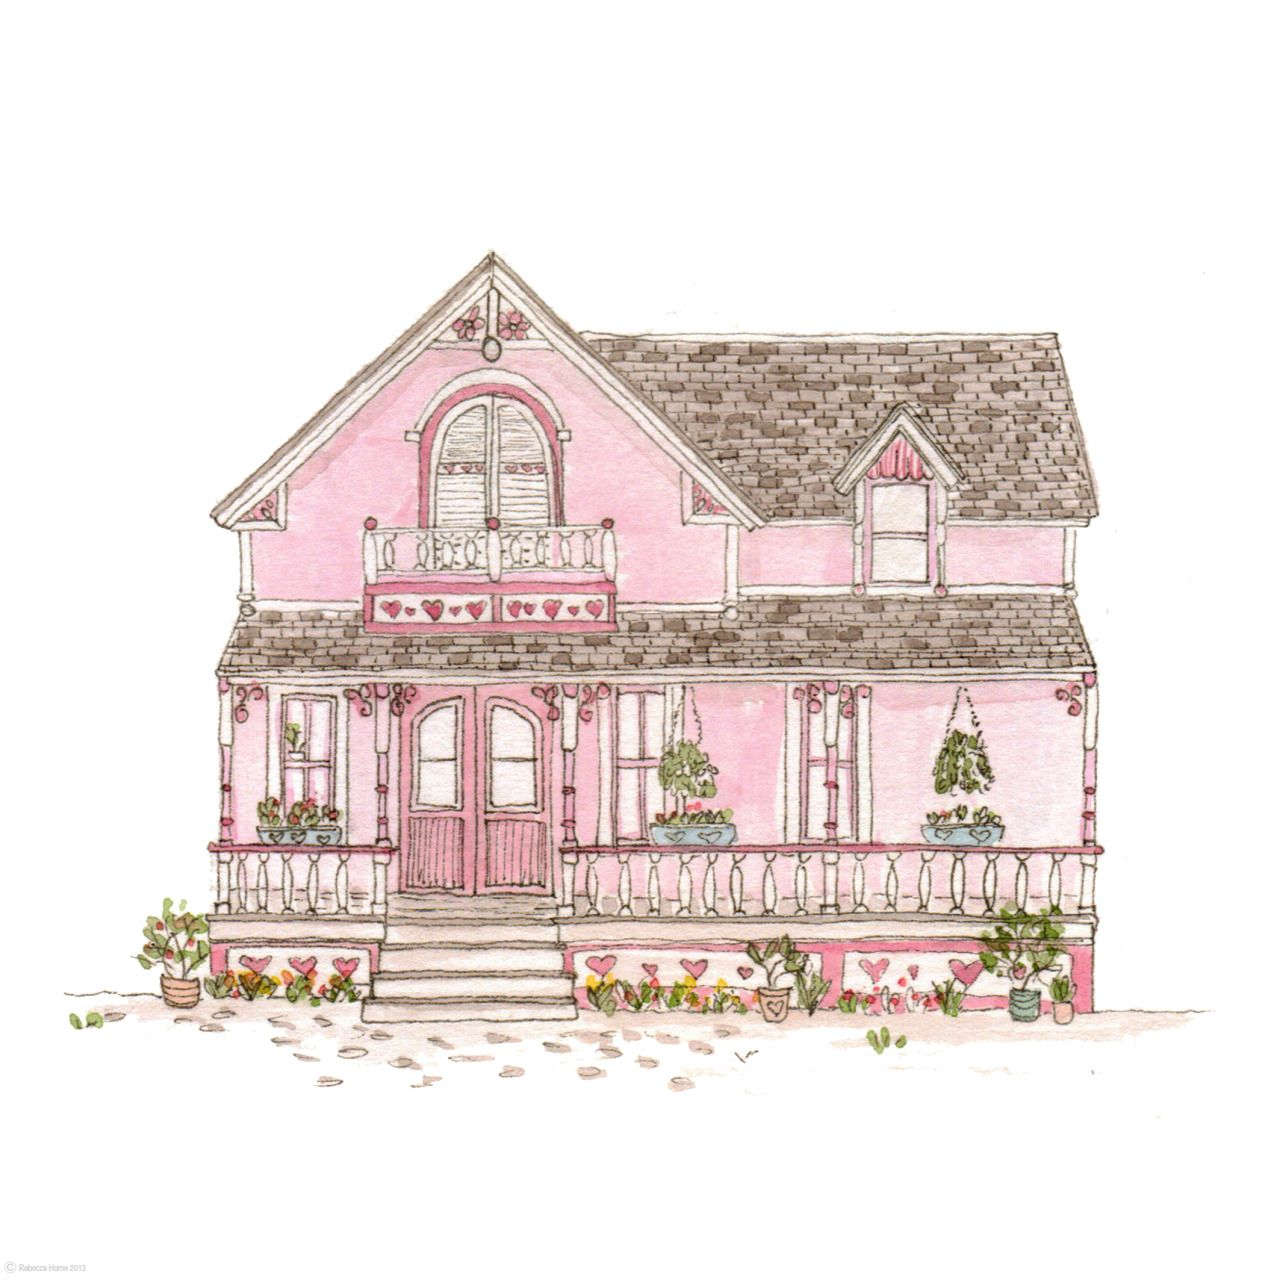 House Illustration, House Drawing